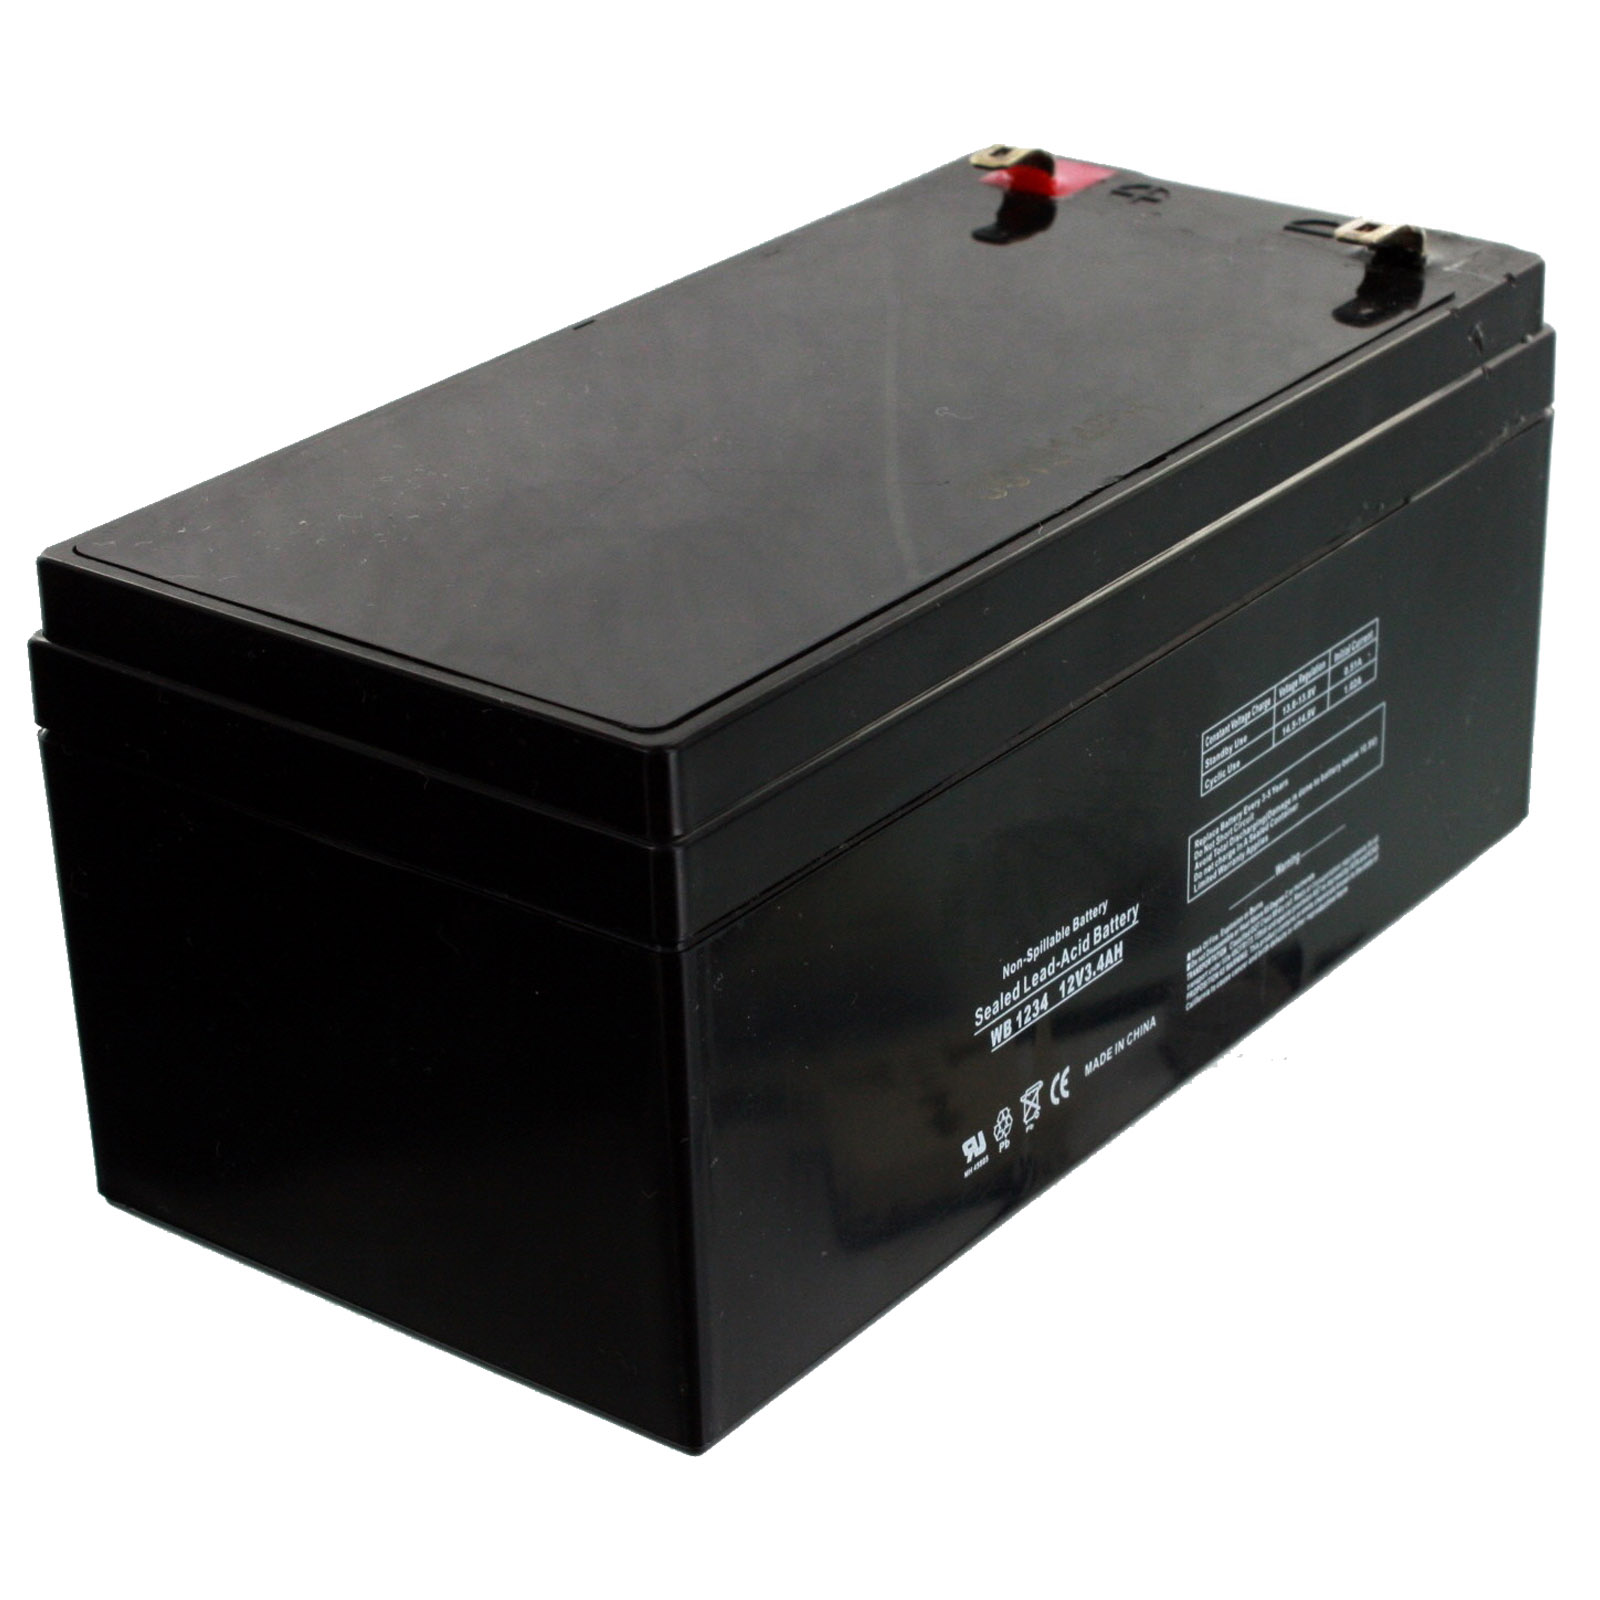 replacement for toro lawn mower 106 8397 battery 12v 3 4ah fast usa ship ebay. Black Bedroom Furniture Sets. Home Design Ideas